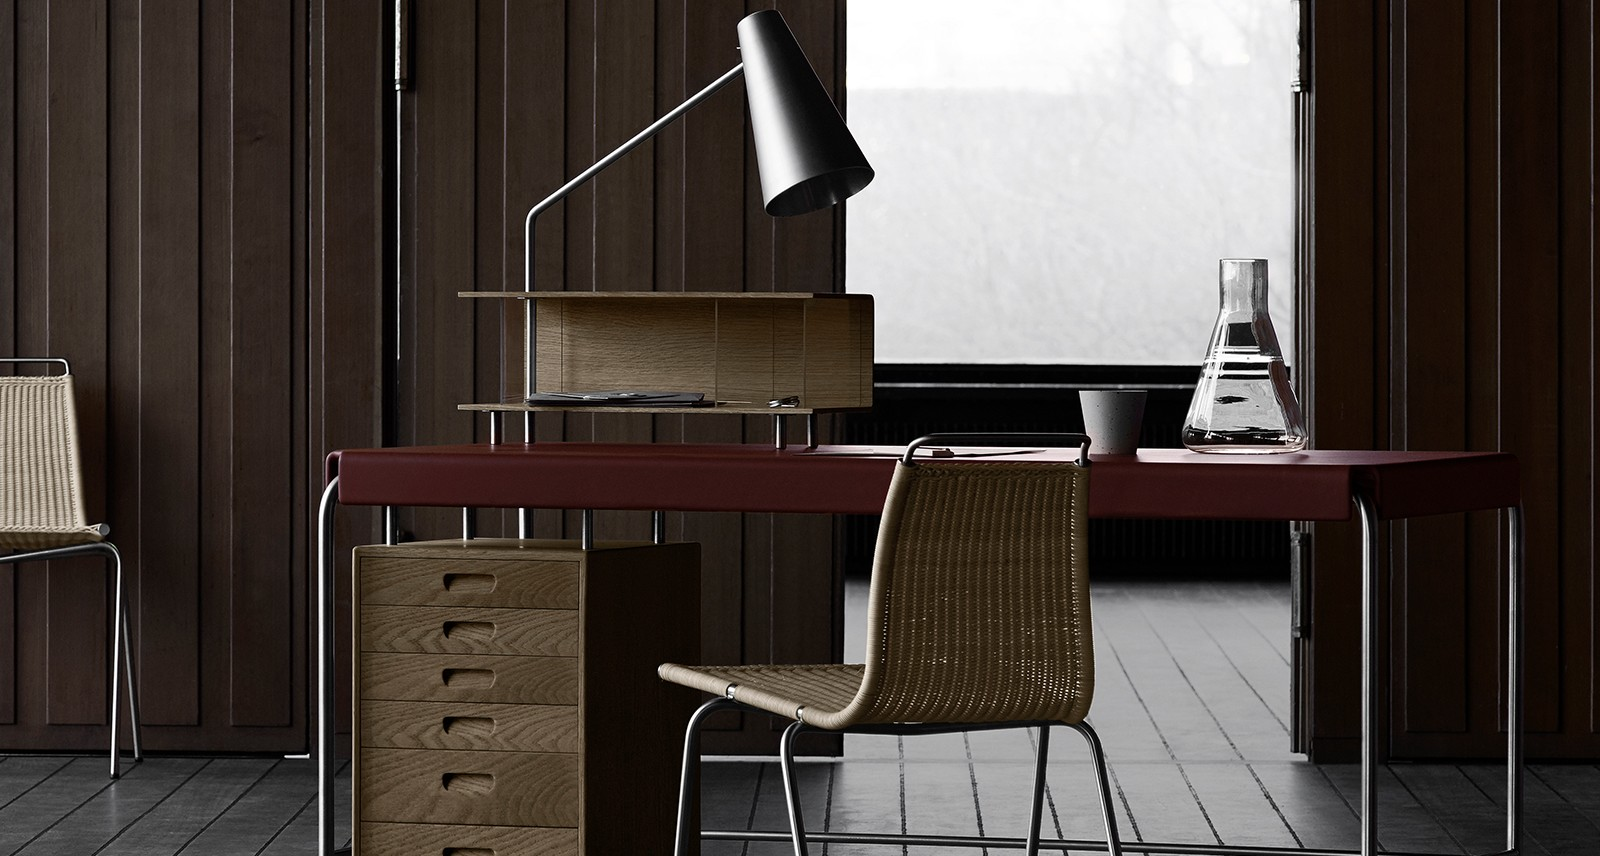 If You Buy One Piece for Your Home Office, Make It Arne Jacobsen's Society Table Desk